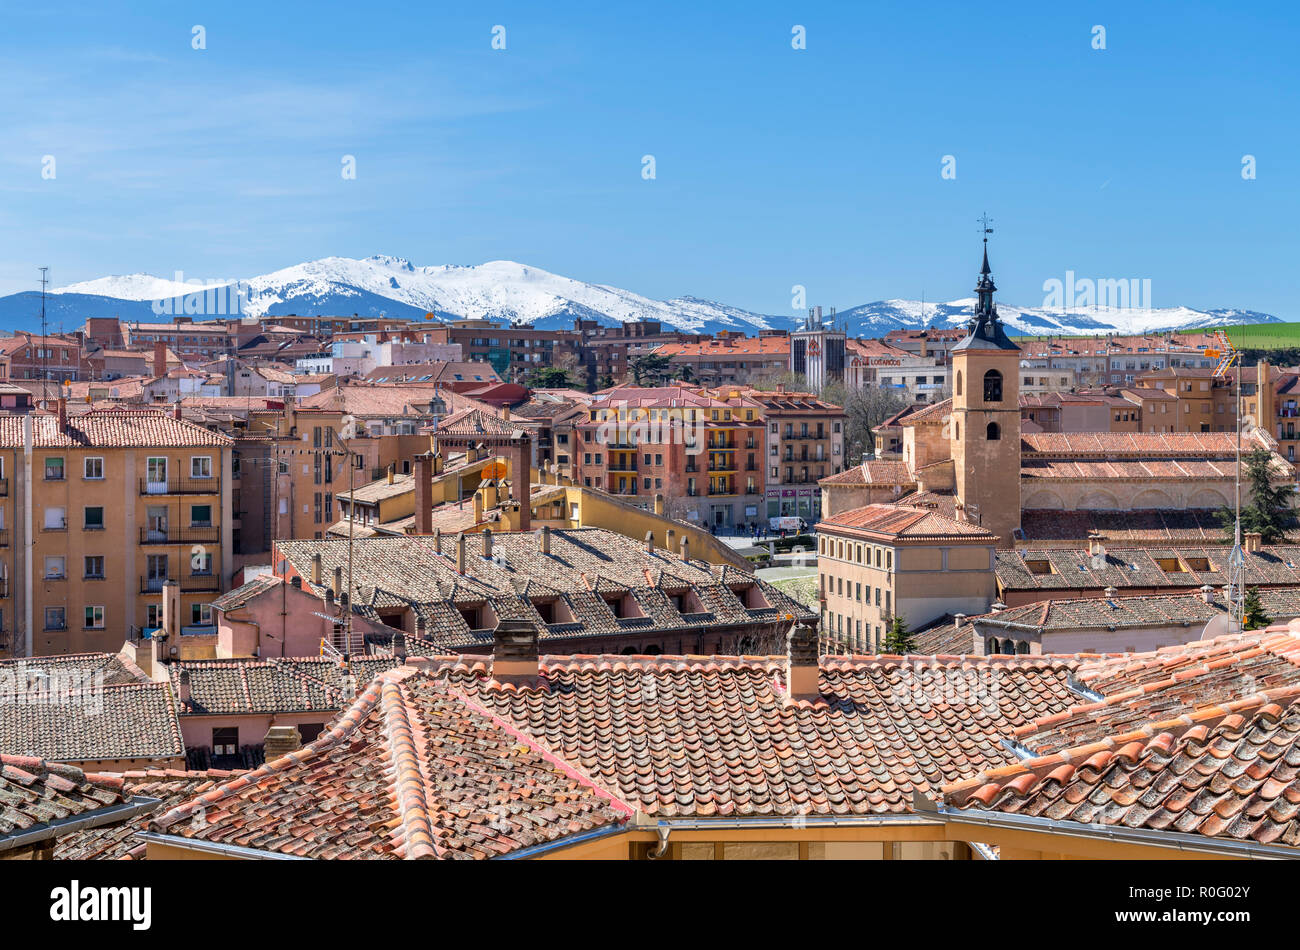 View over the rooftops of the old town towards snow-capped mountains, Segovia, Castilla y Leon, Spain - Stock Image